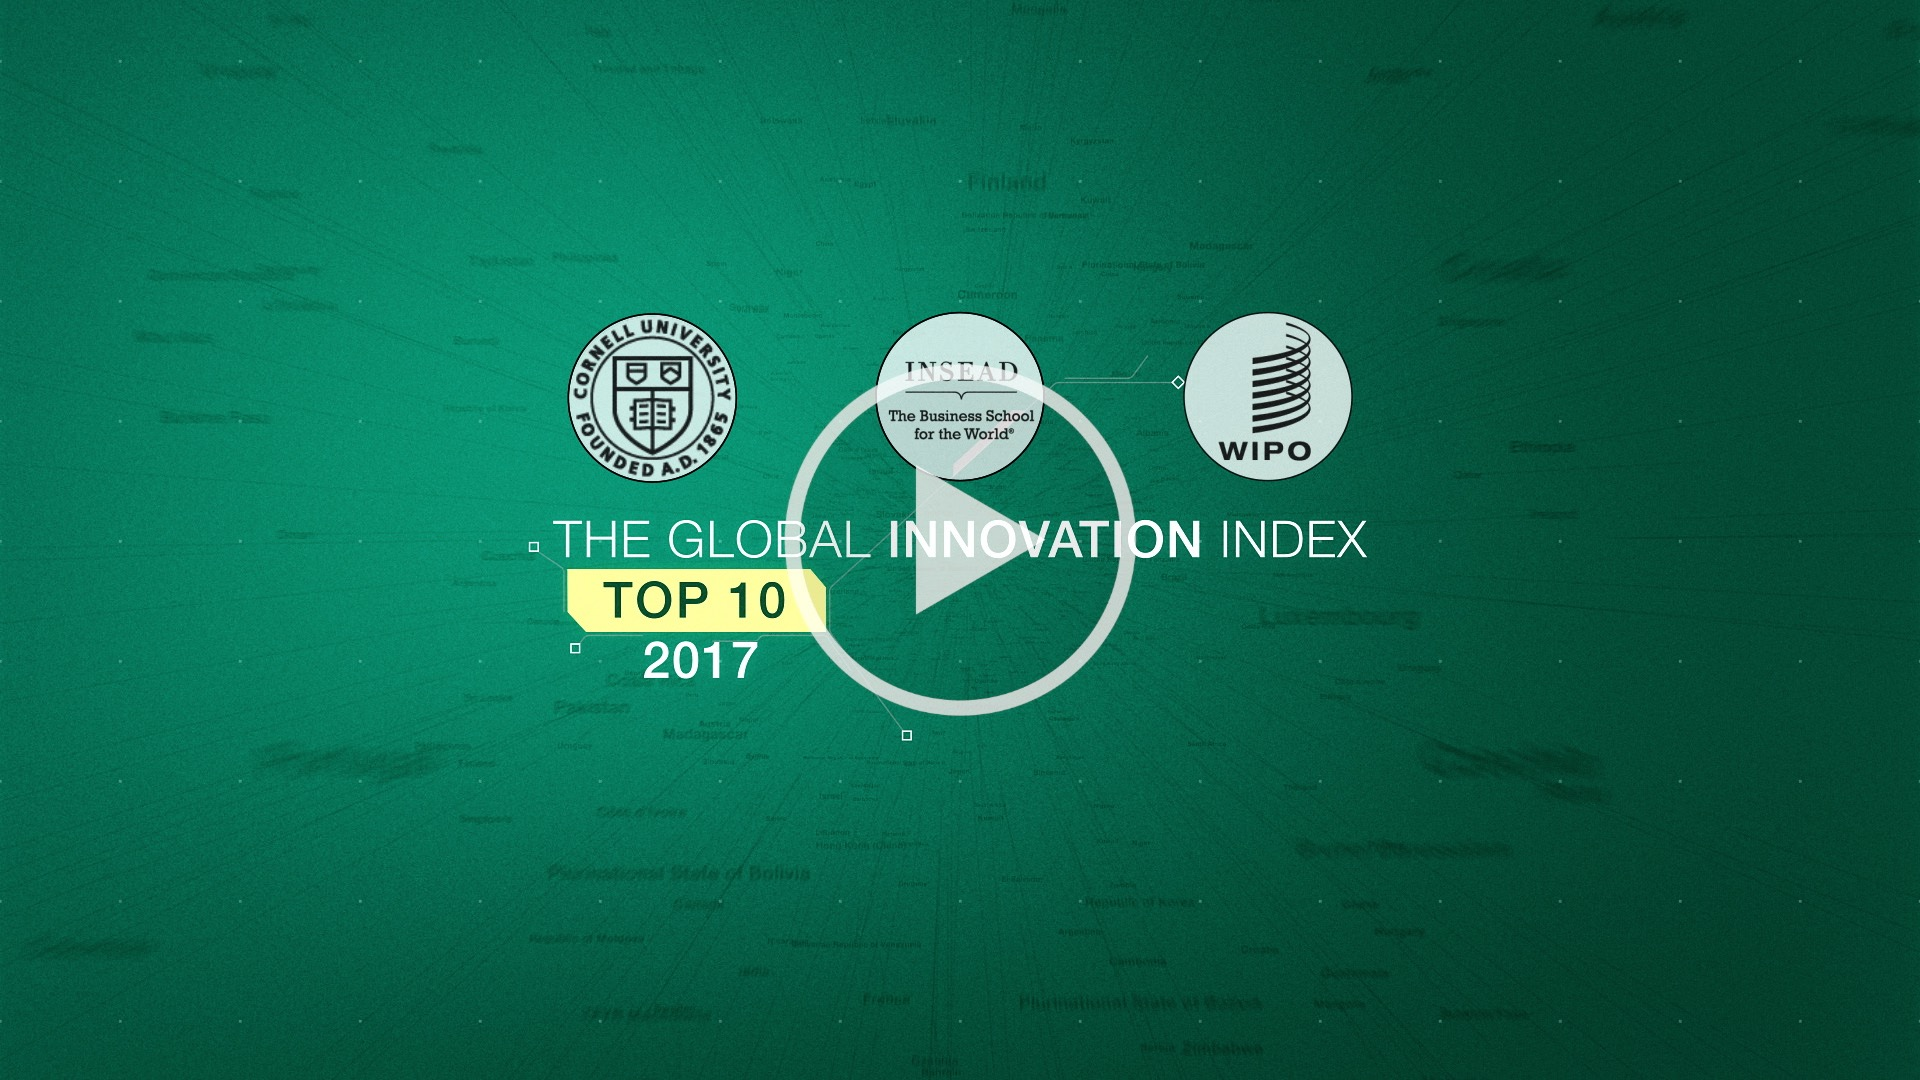 GII 2017 top 10 animation